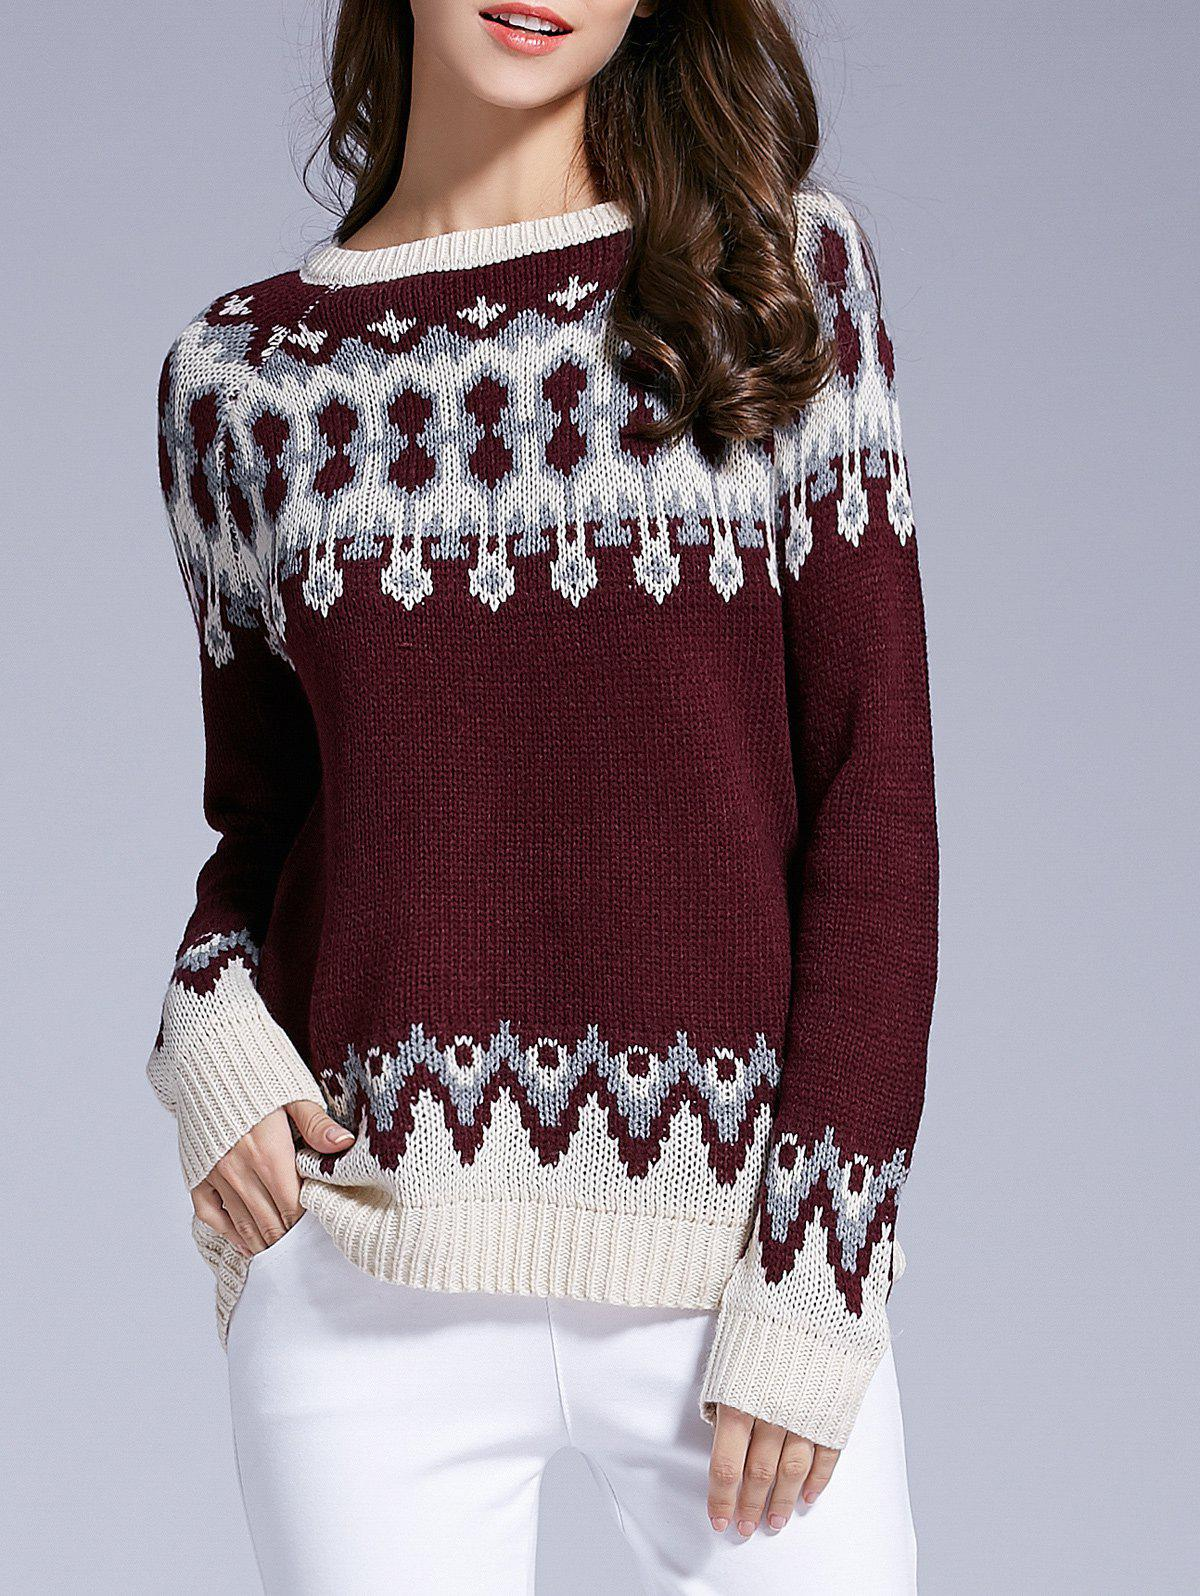 Long Sleeve Round Neck Patterned Sweater - WINE RED M